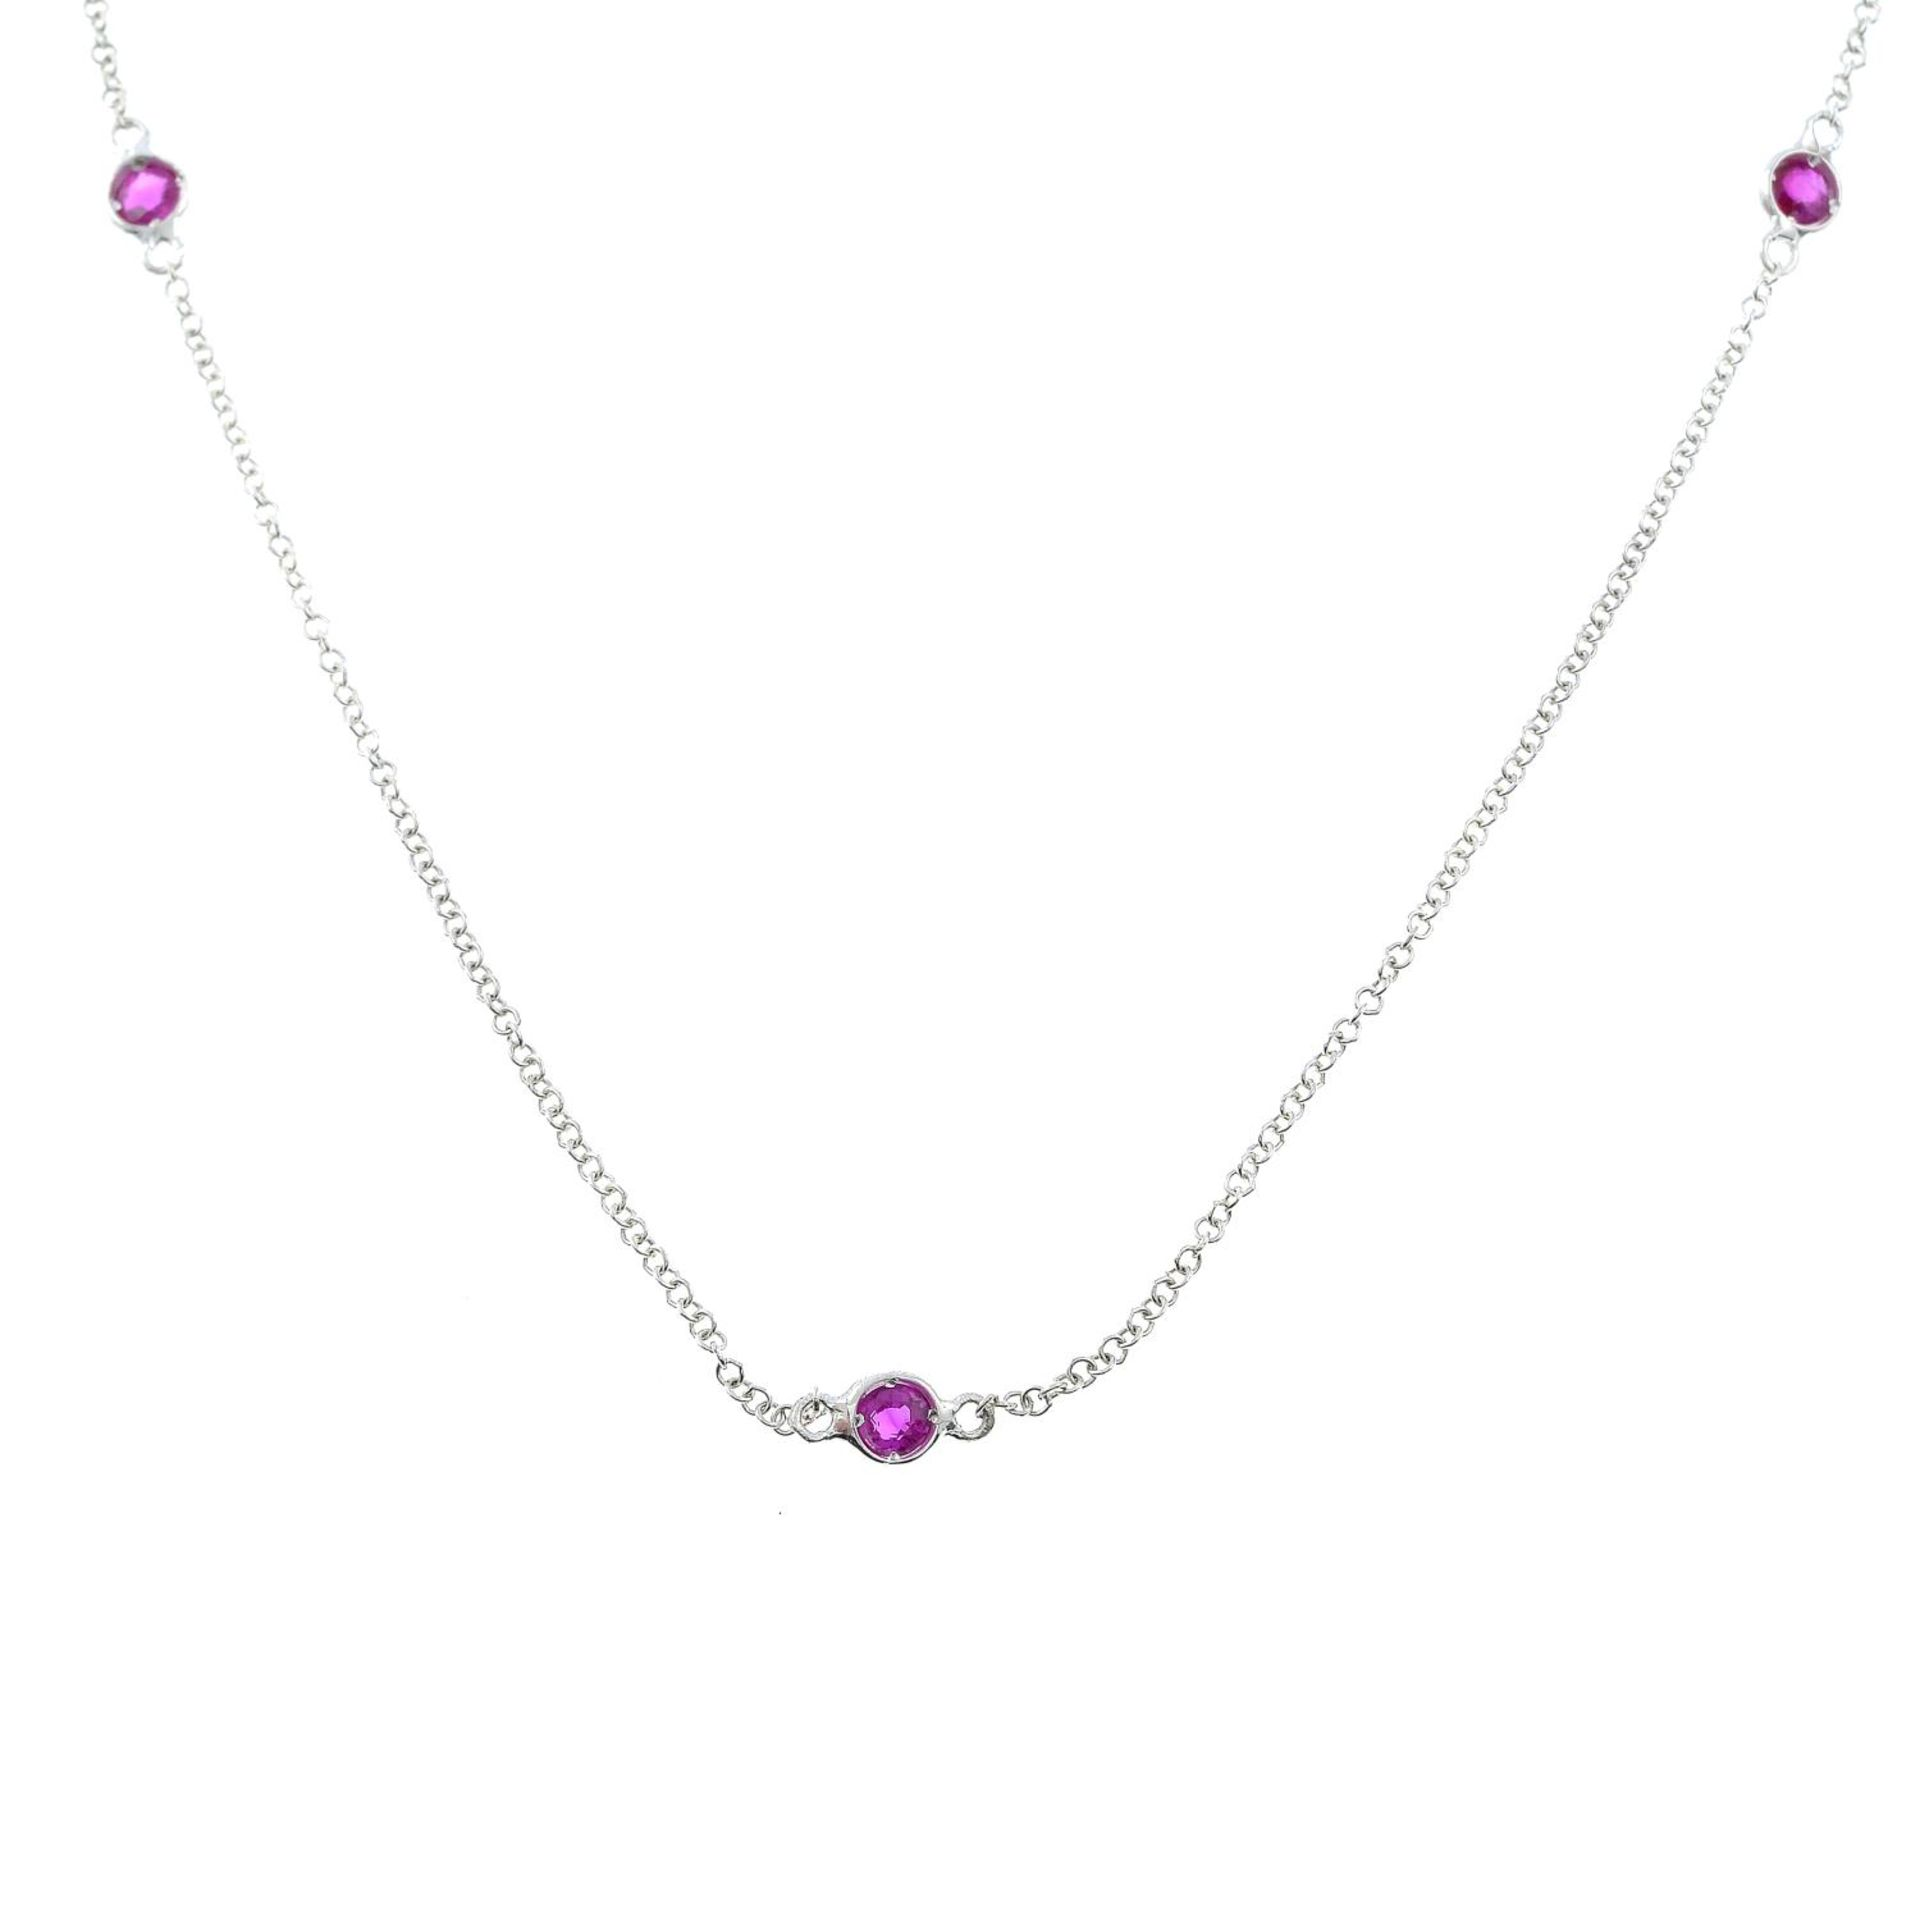 A necklace, with ruby spacers.